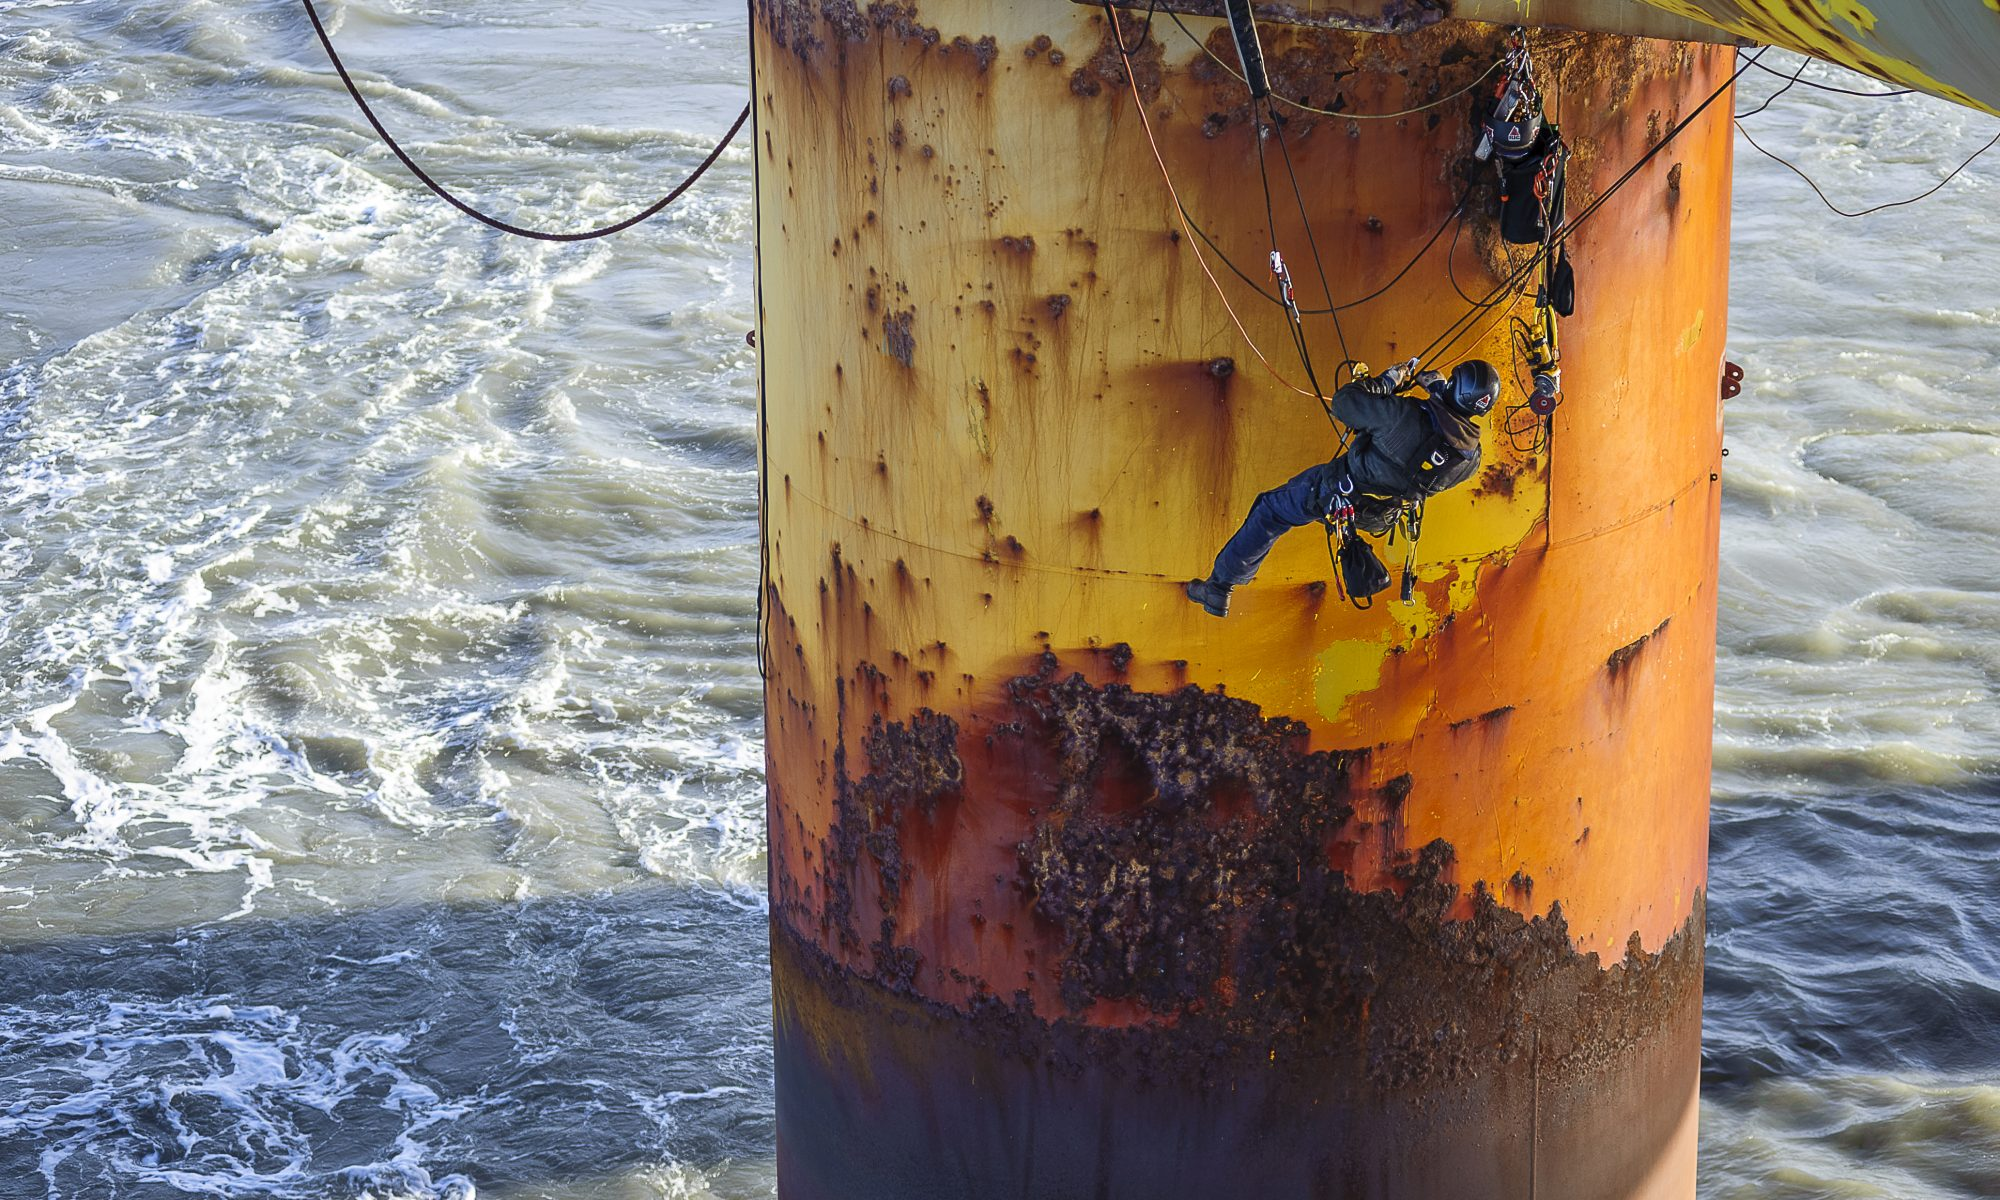 Team of rope access specialists work at height over ocean on offshore oil rig.